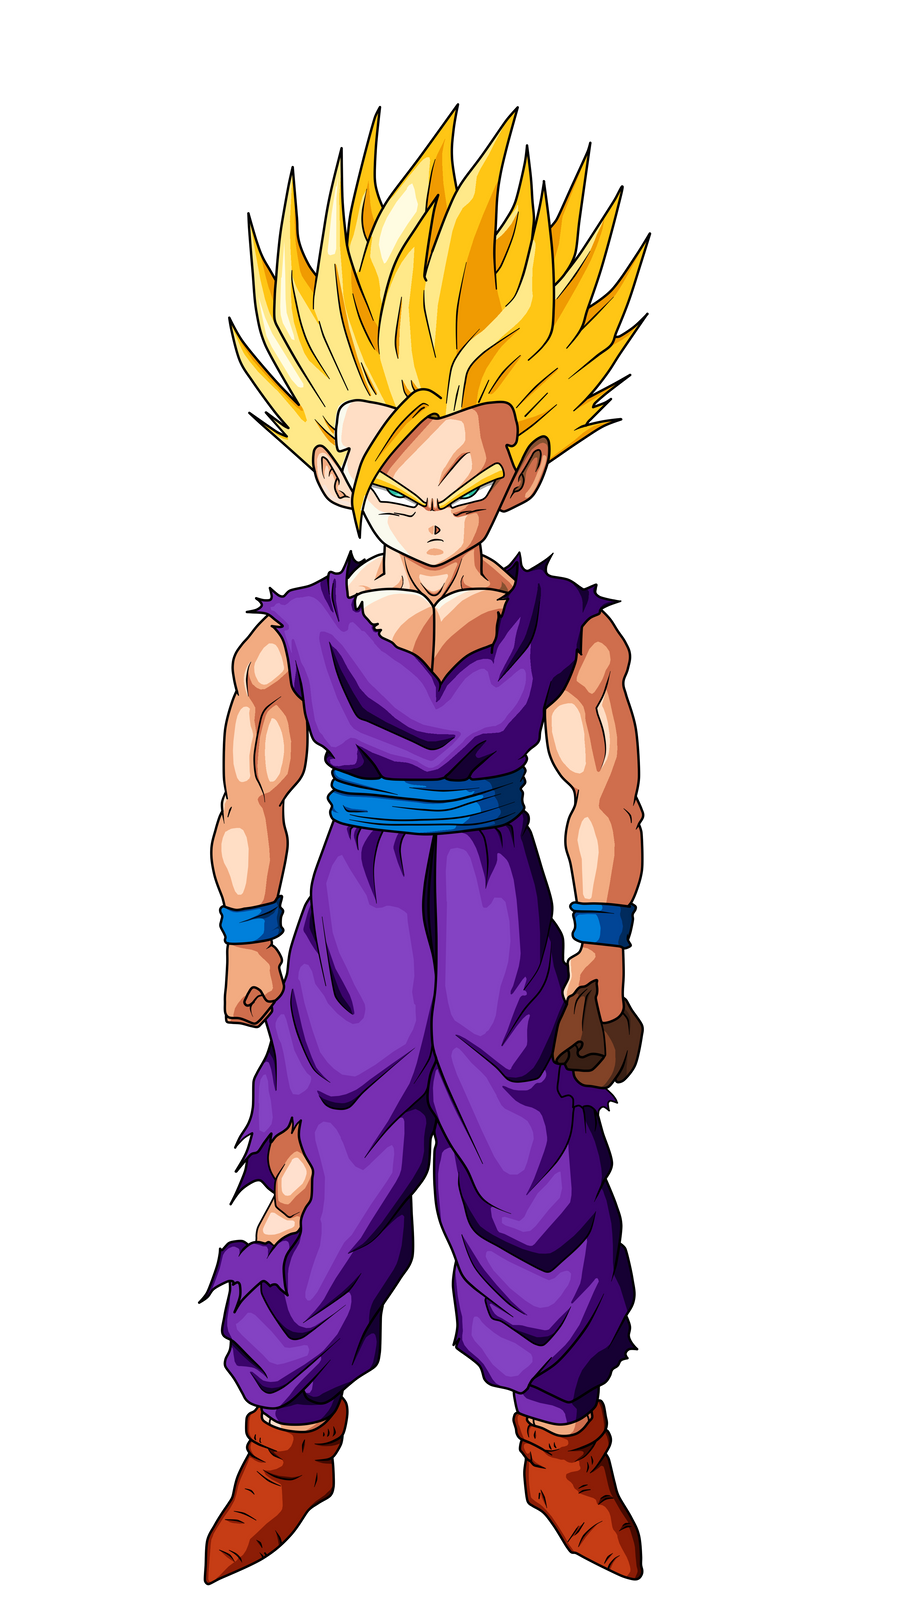 dragonball picture teen z